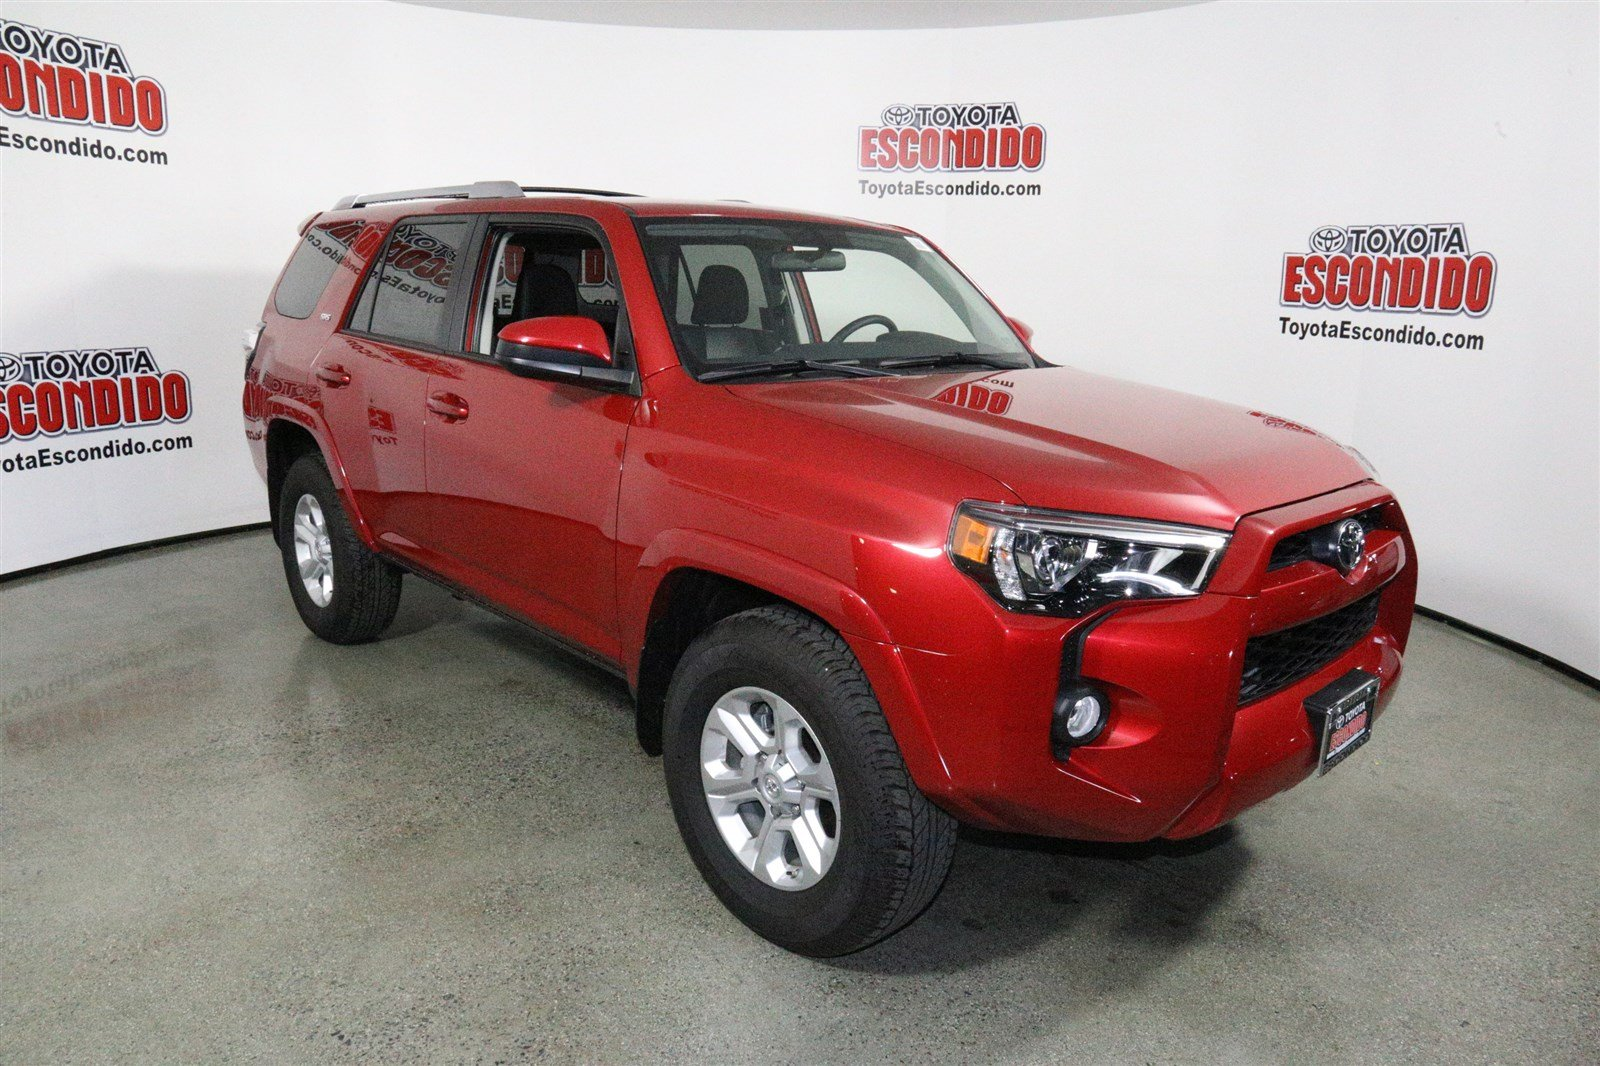 new 2017 toyota 4runner sr5 sport utility in escondido 1014861 toyota escondido. Black Bedroom Furniture Sets. Home Design Ideas